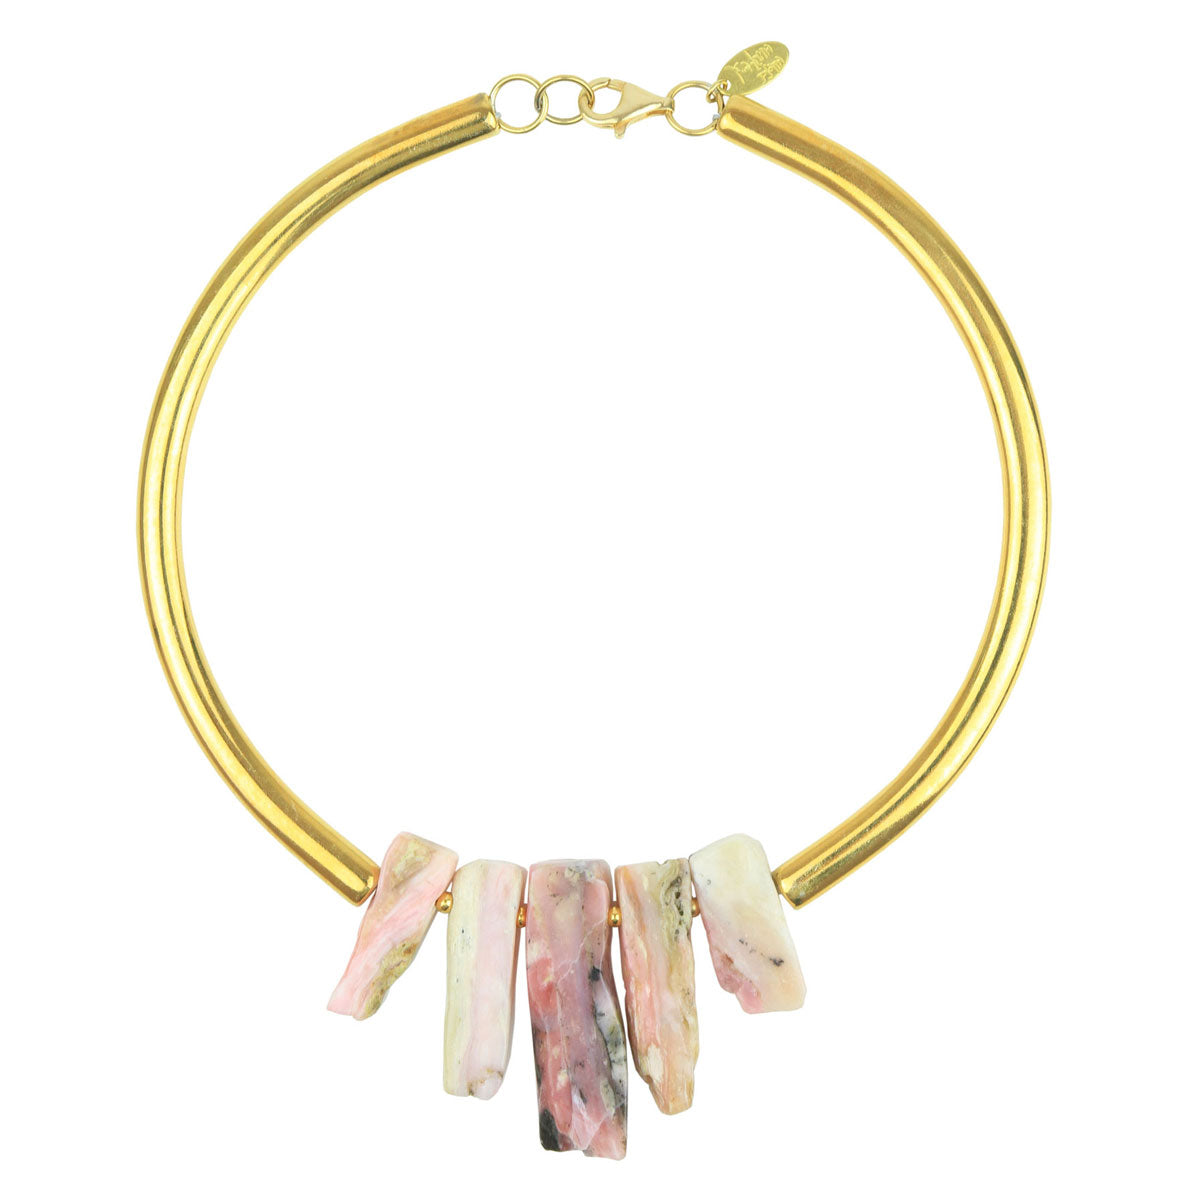 Erica Pink Opal Gold Plated Metal Collar Necklace